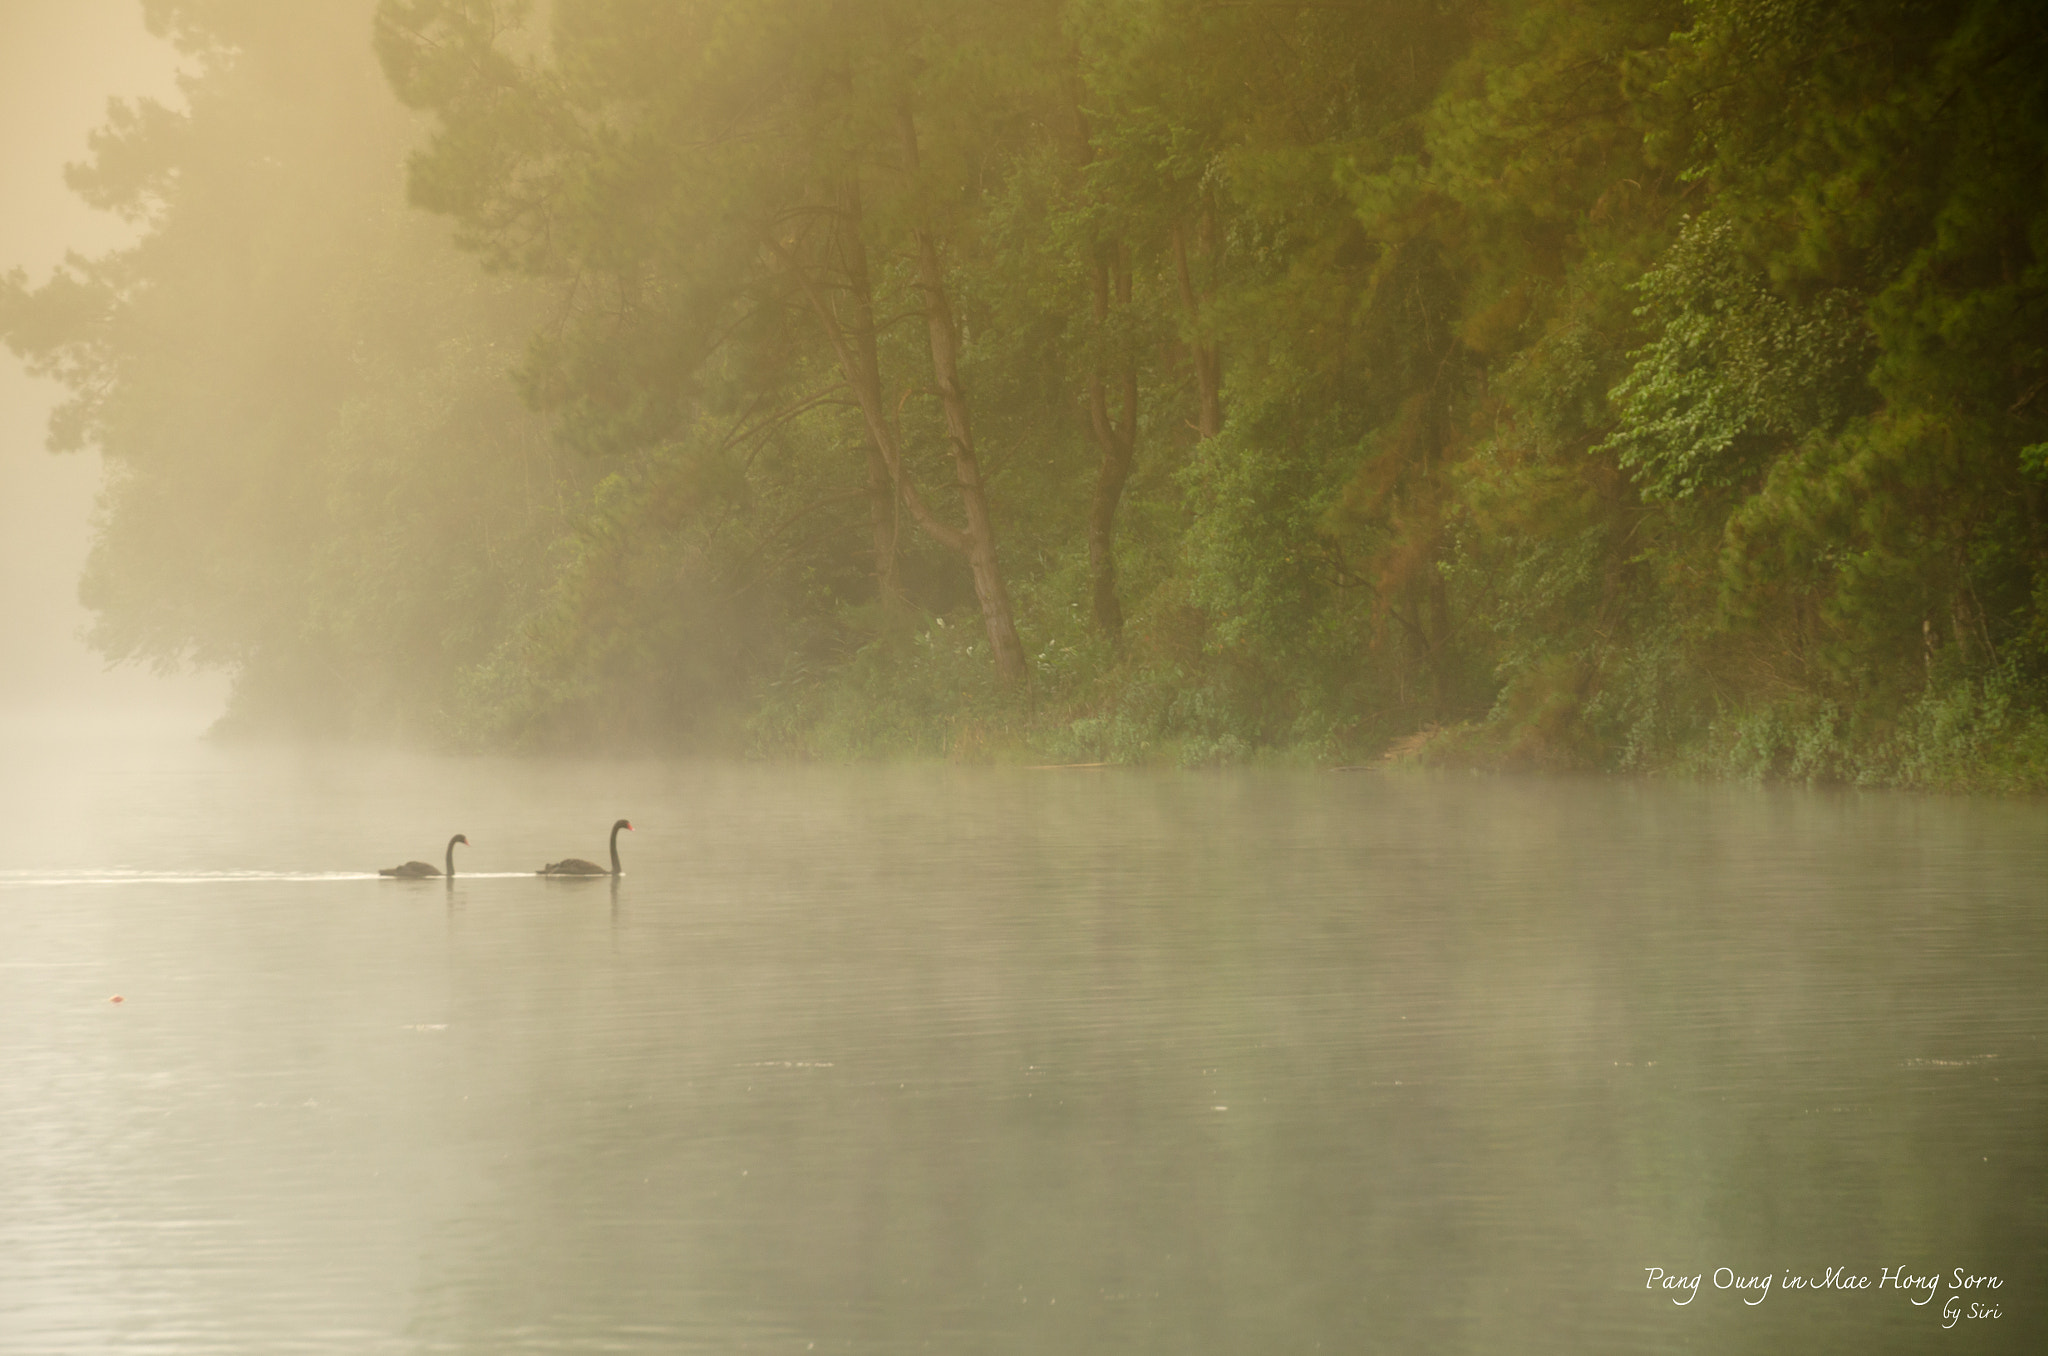 Photograph Pang Oung in Mae Hong Sorn by Sirinun Kaewchampa on 500px